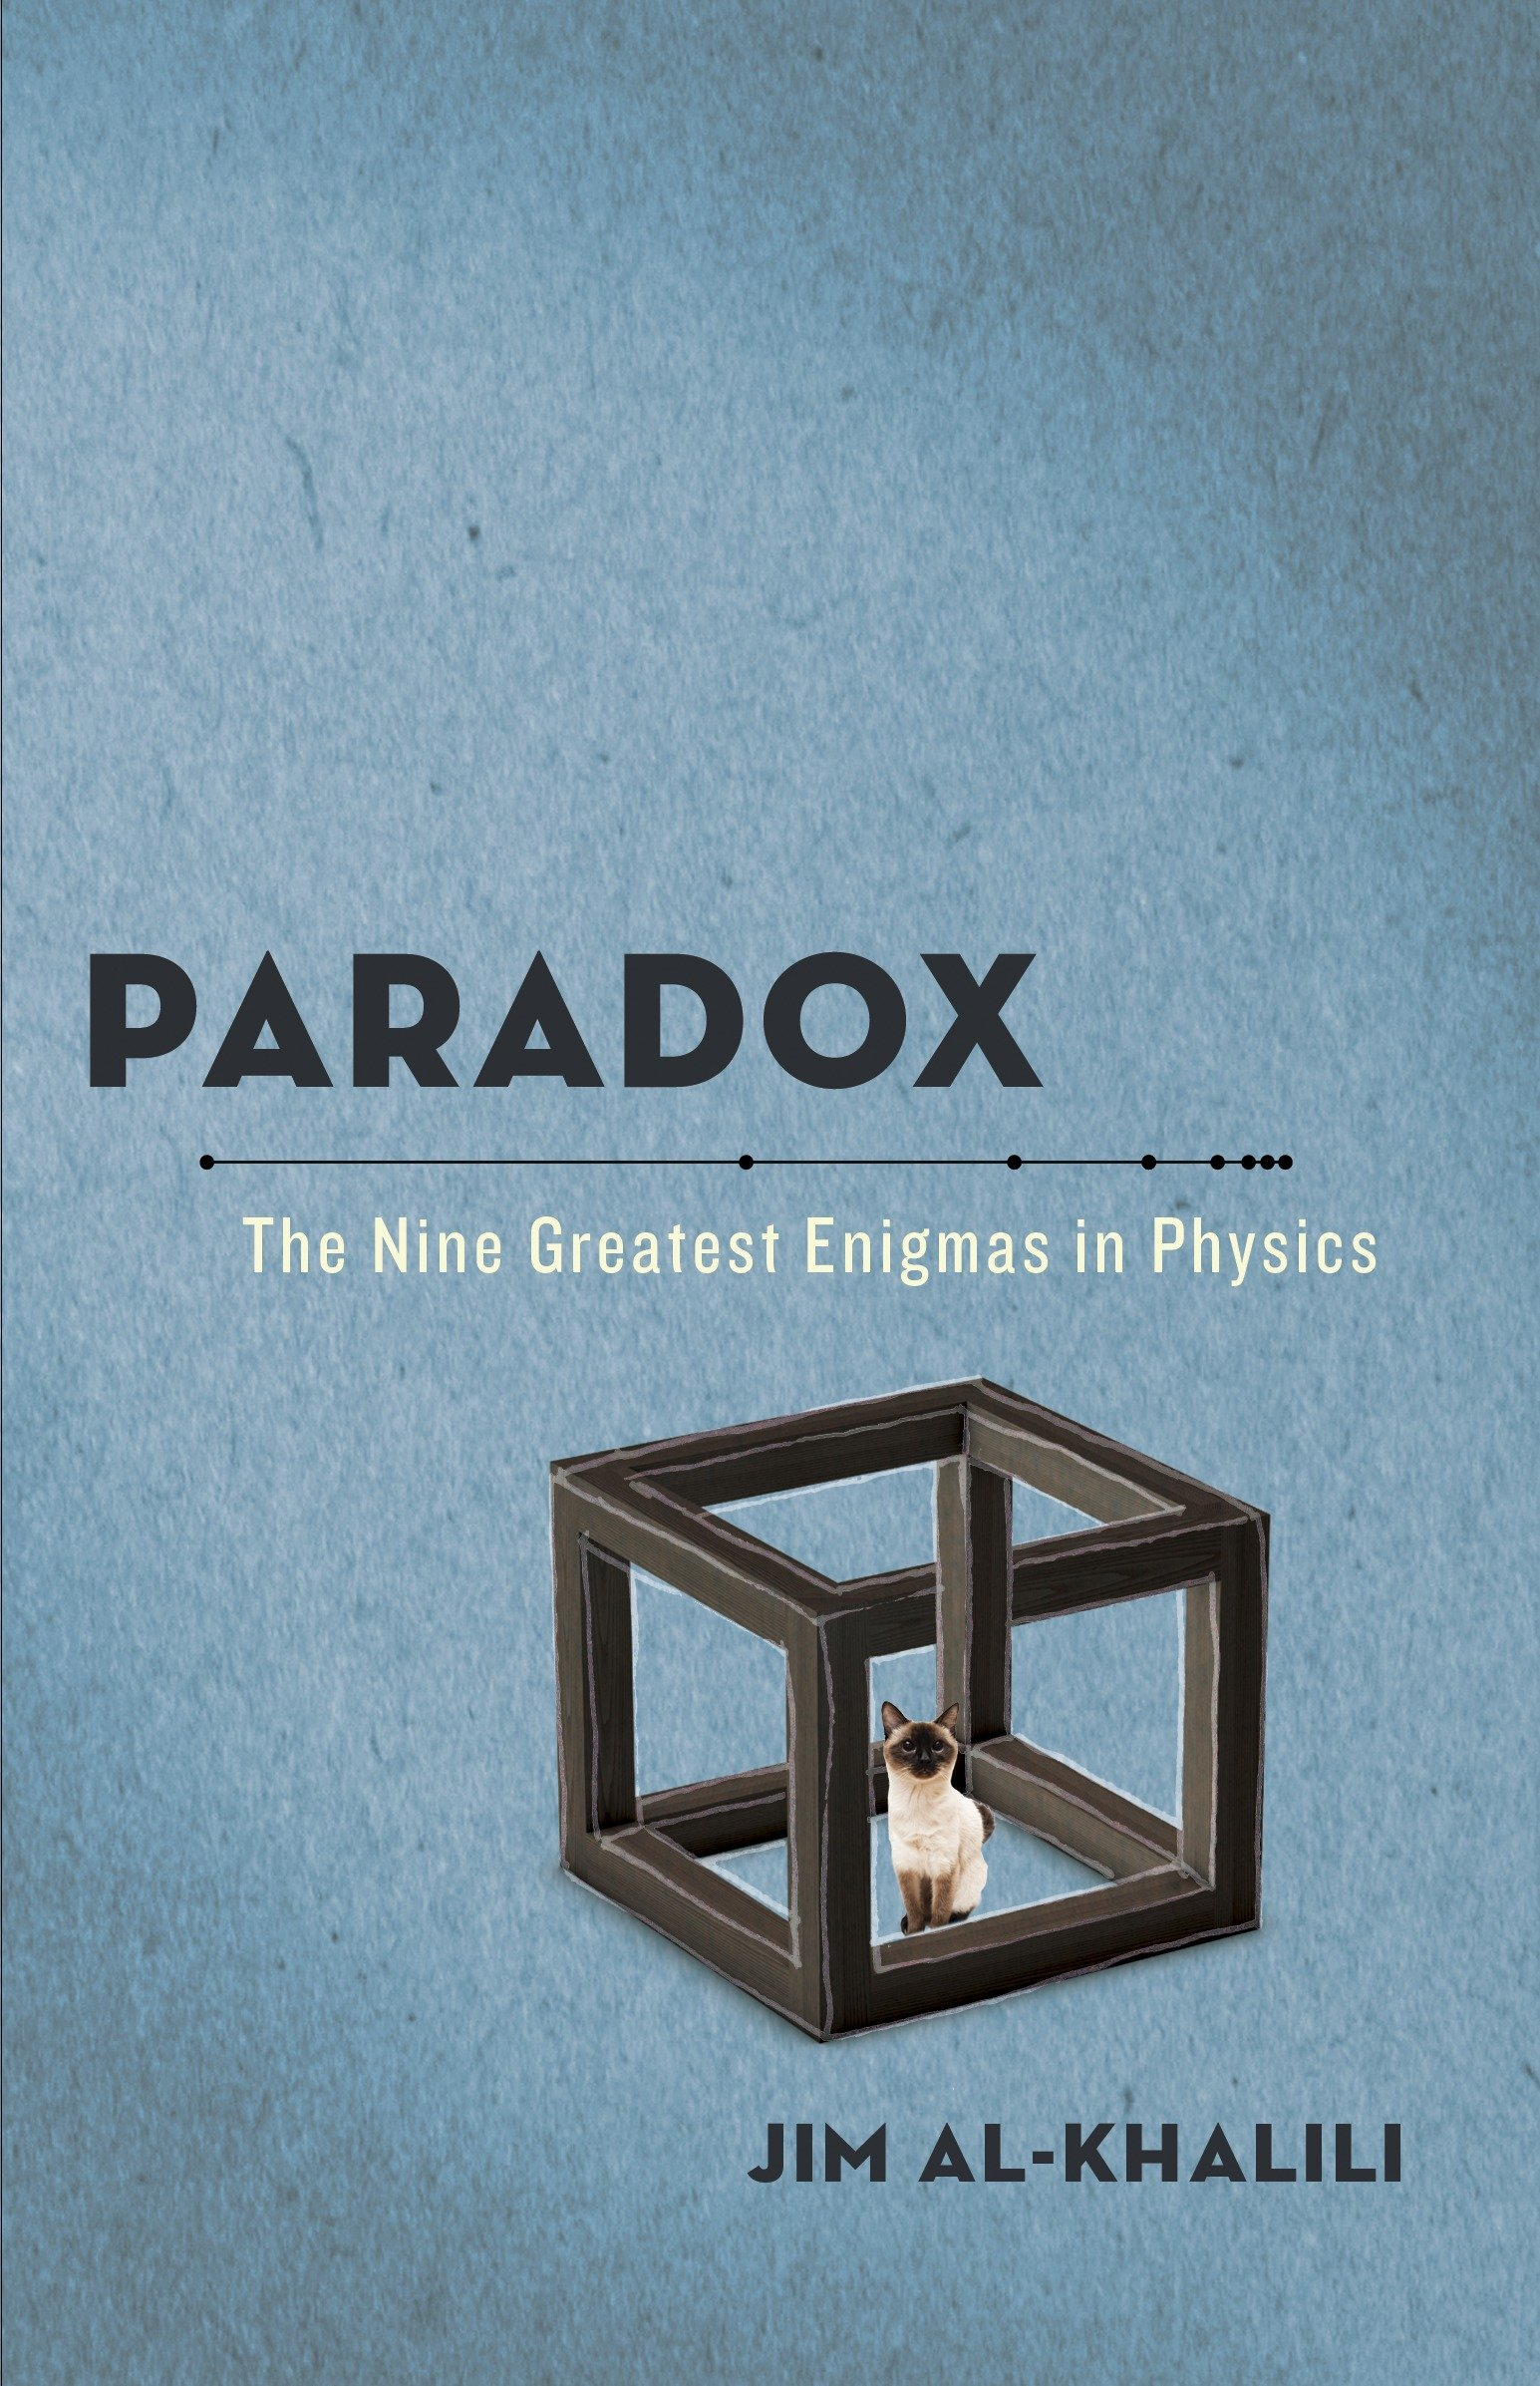 Paradox: The Nine Greatest Enigmas in Physics: Jim Al